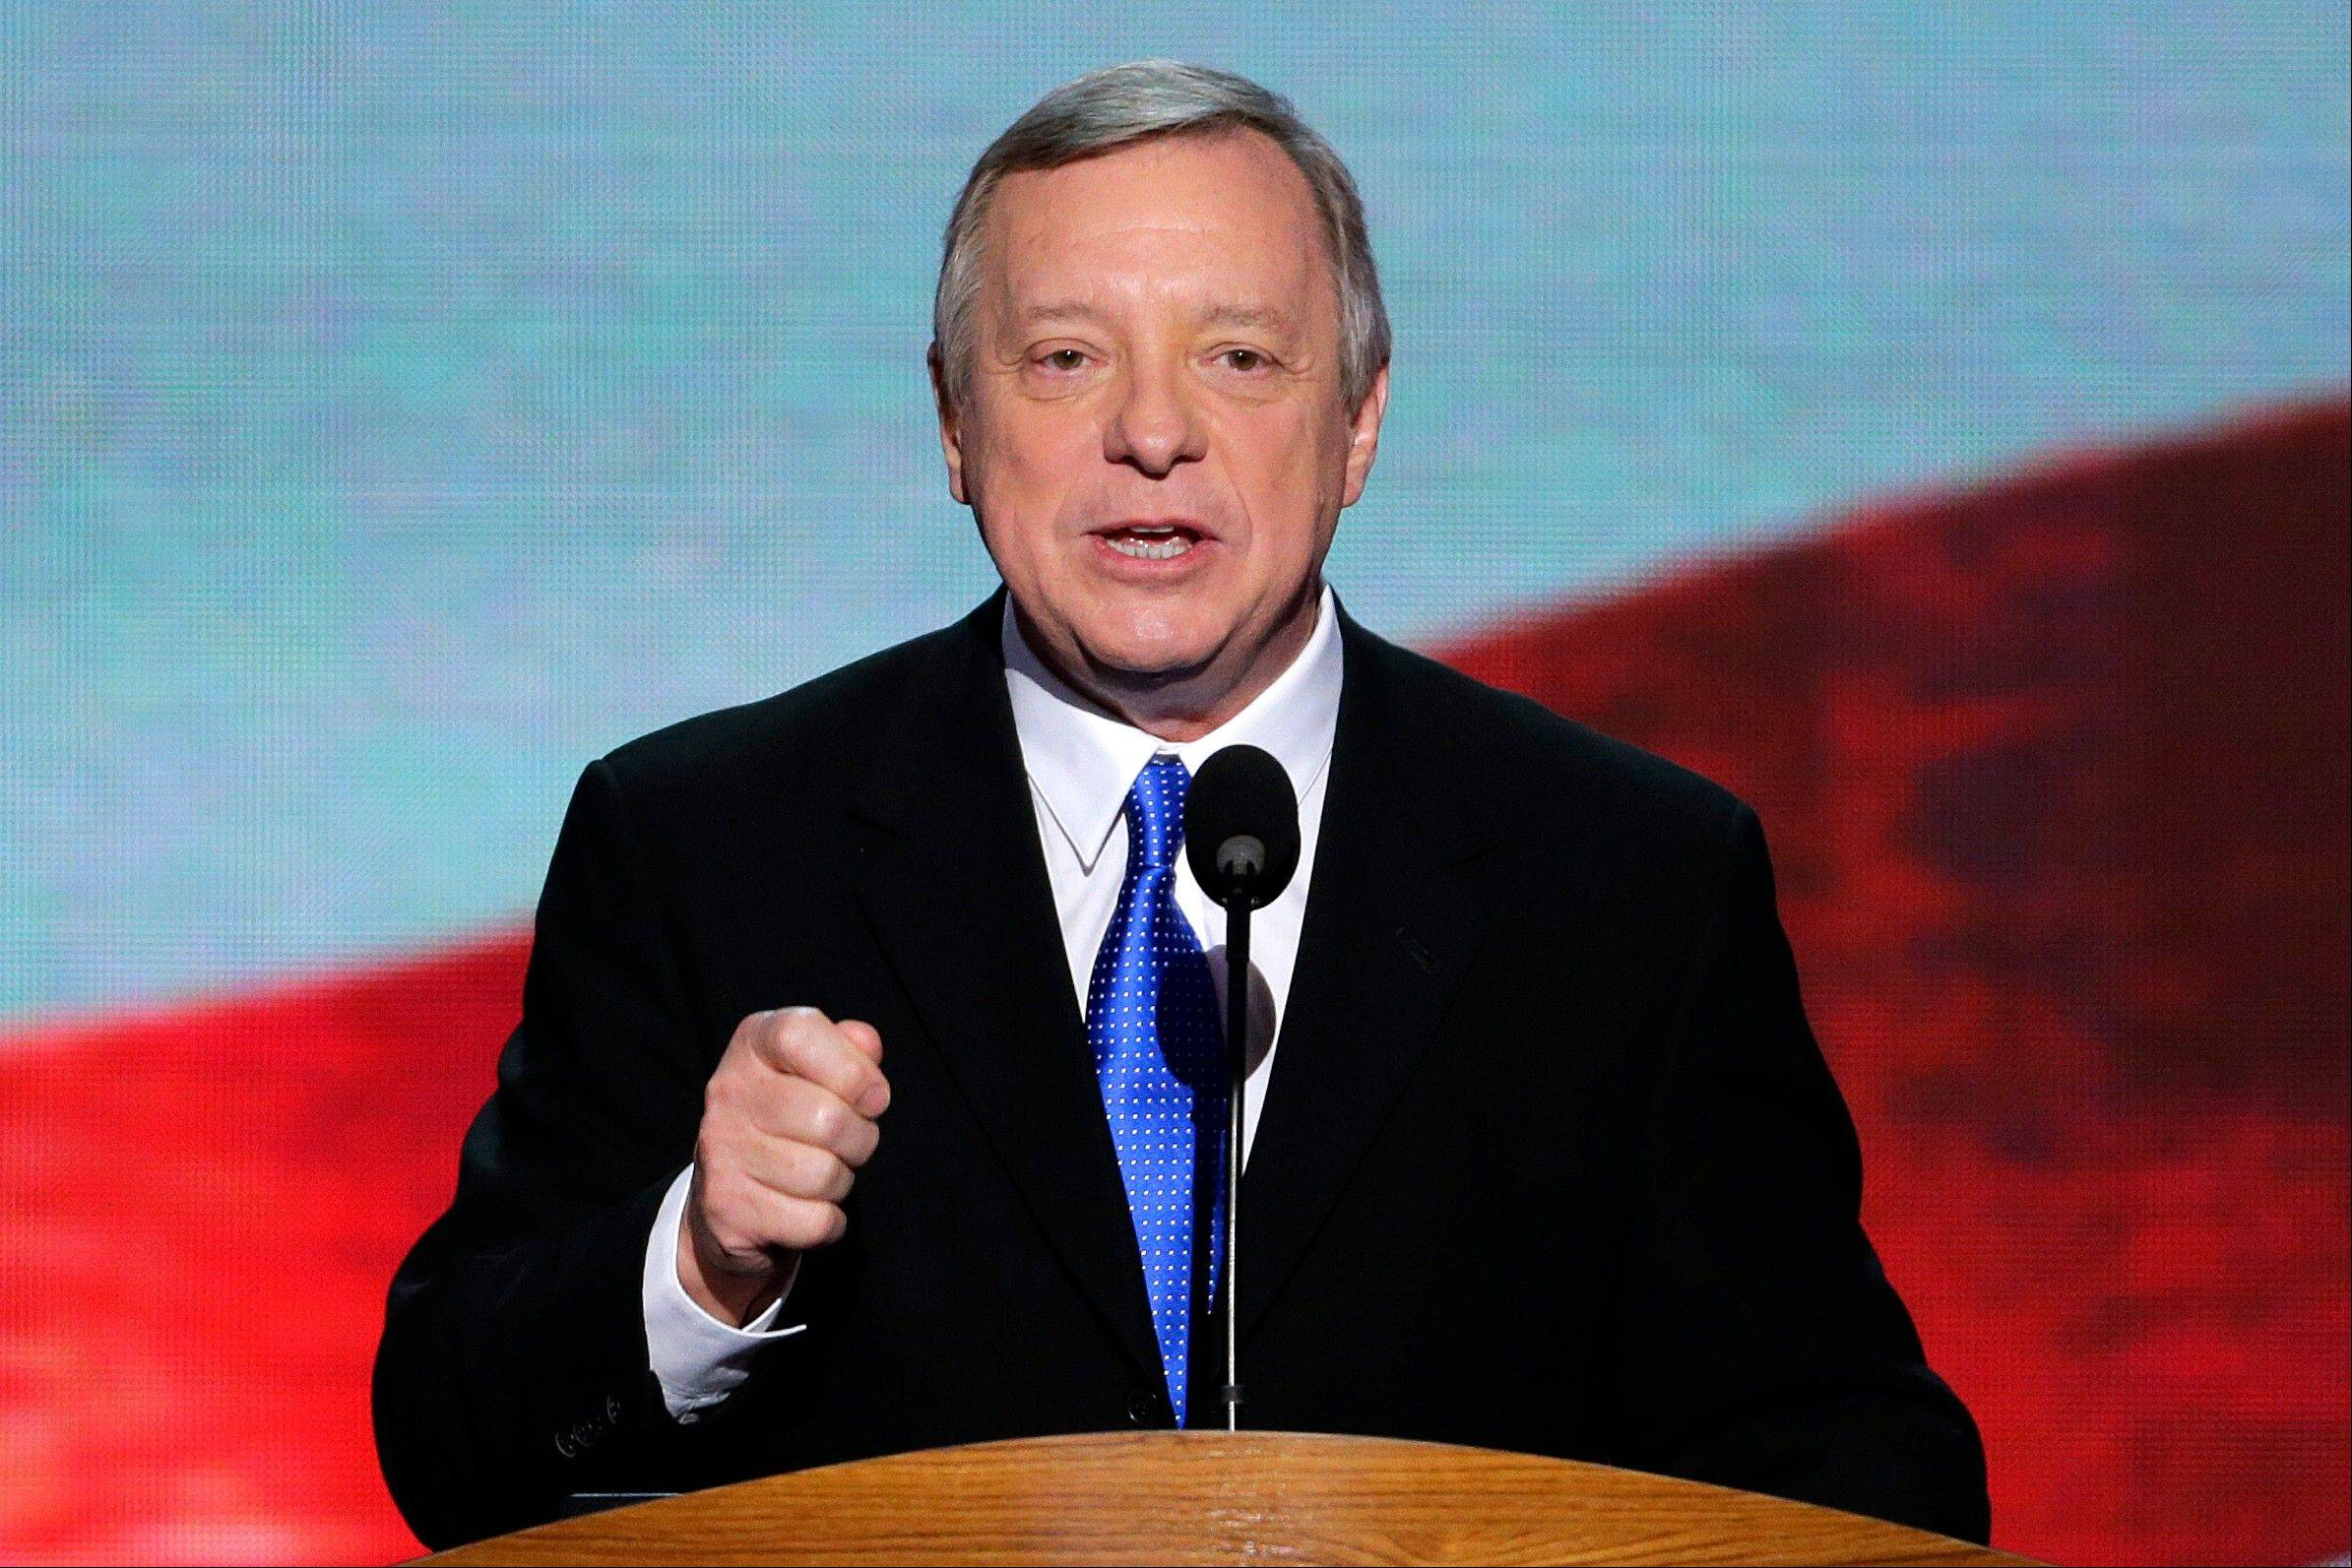 Sen. Dick Durbin of Illinois Durbin and seven other senators announced plans Monday for immigration reform.